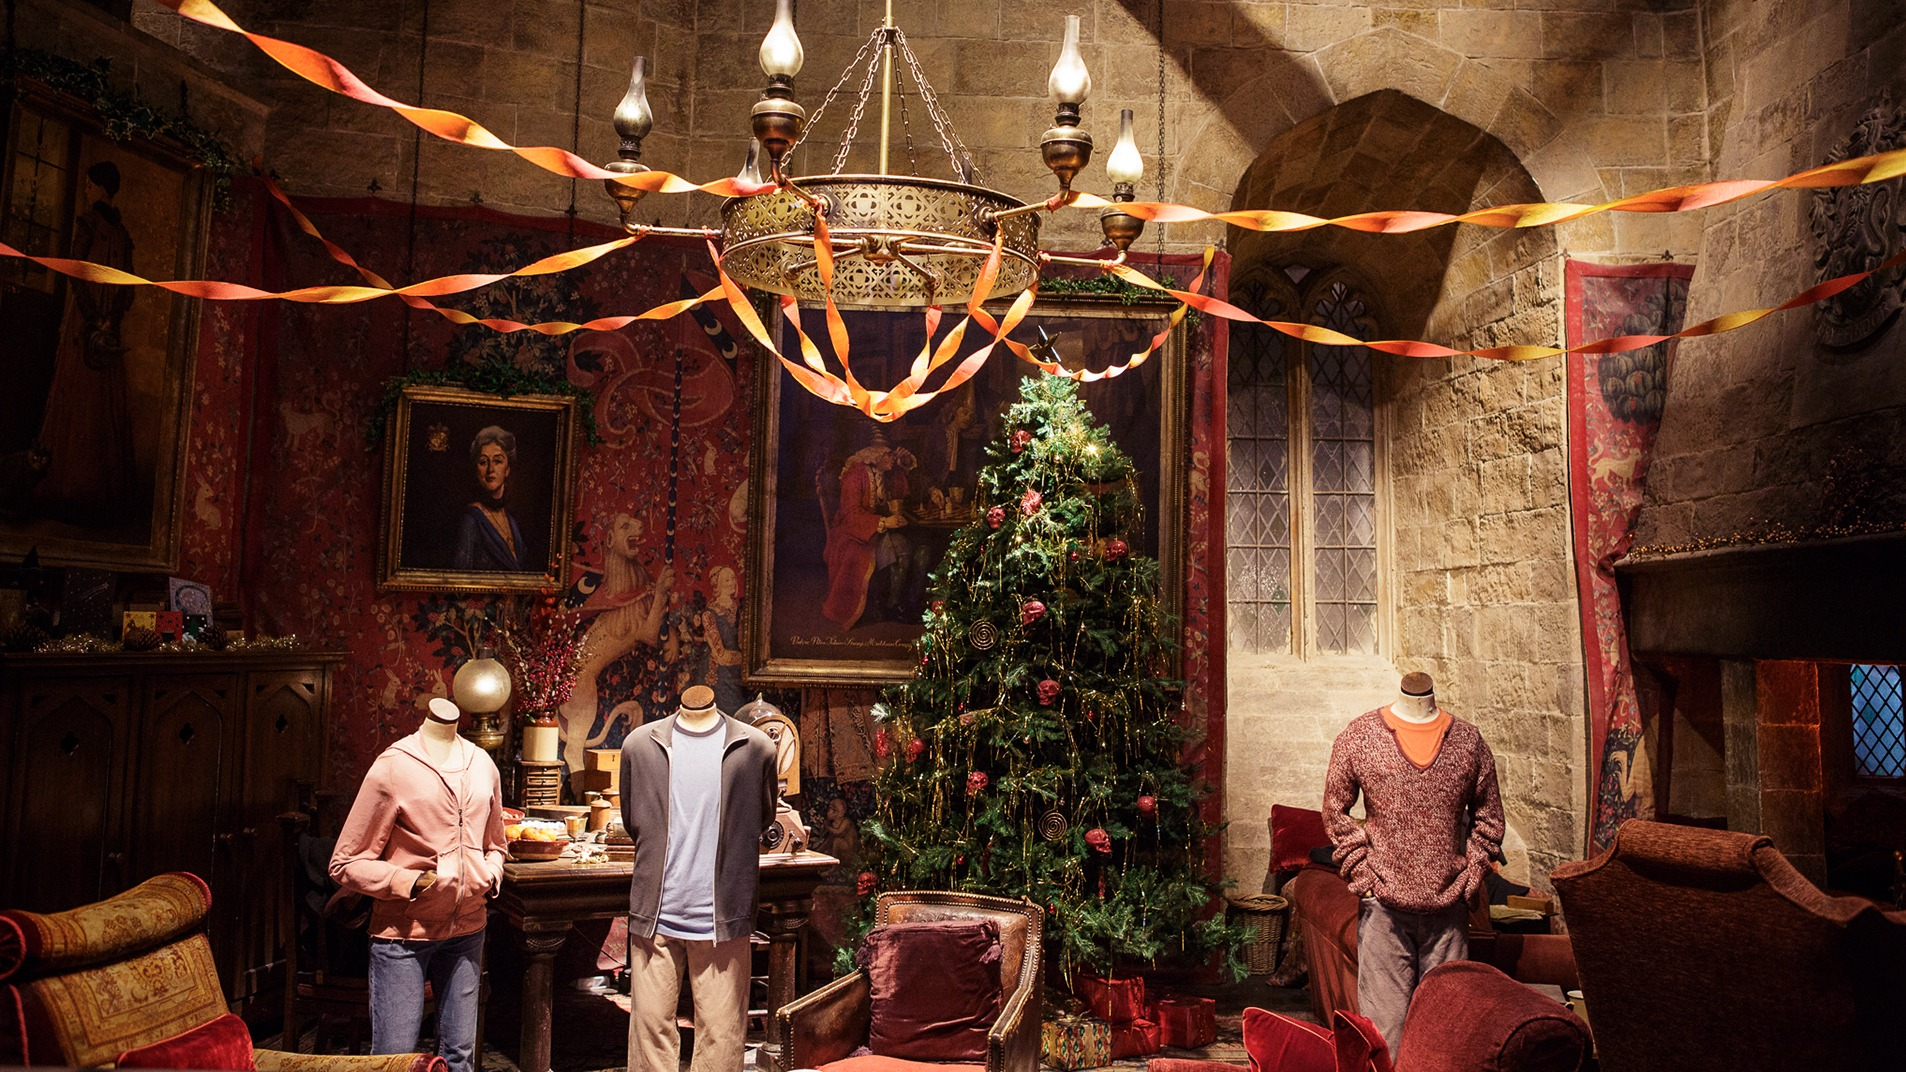 Video call background - Festive Gryffindor Common Room